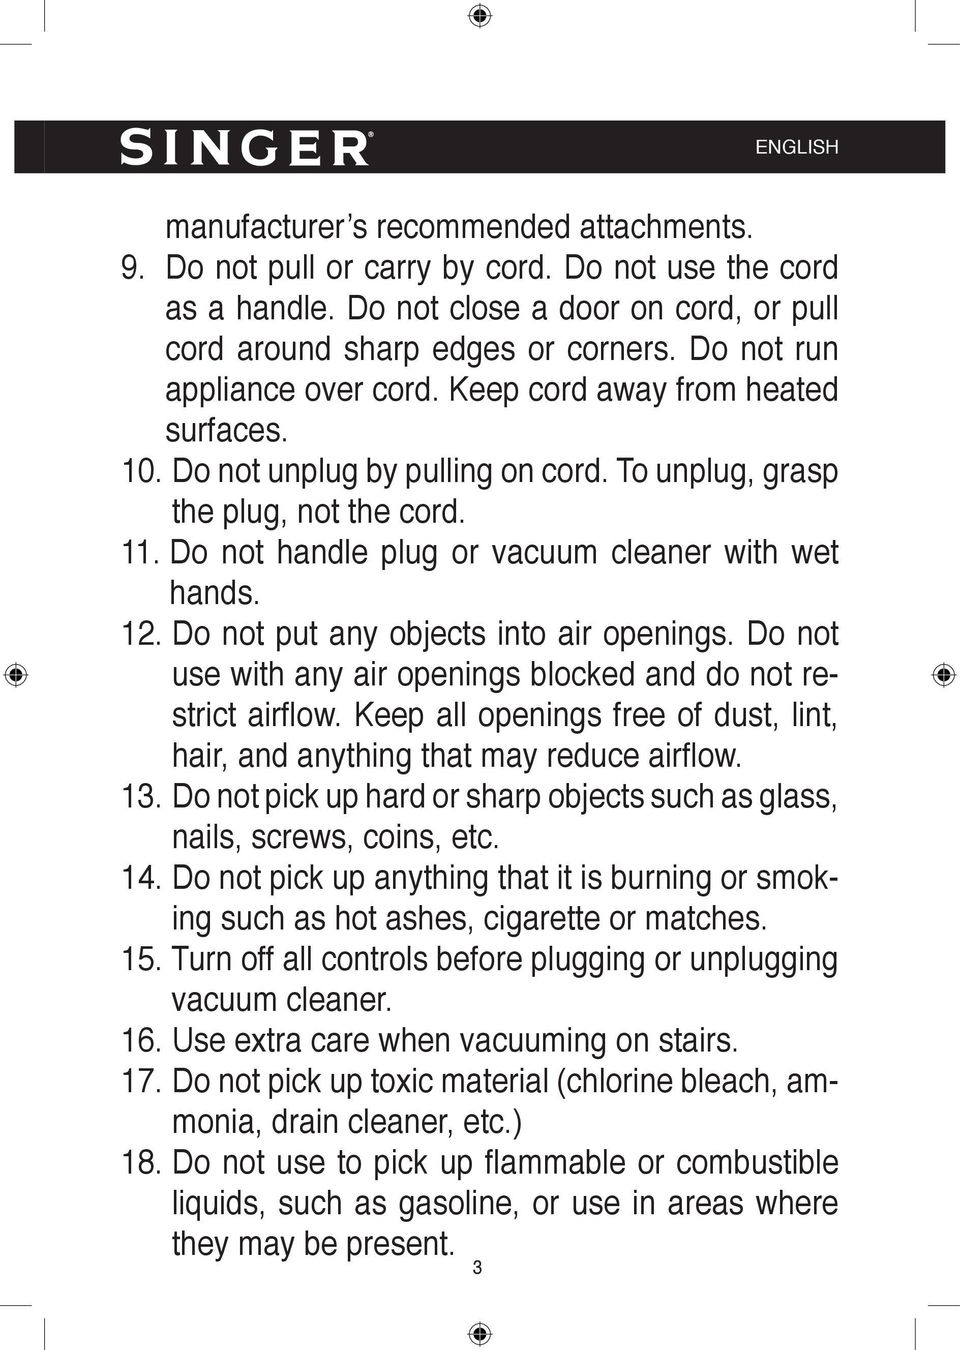 Do not handle plug or vacuum cleaner with wet hands. 12. Do not put any objects into air openings. Do not use with any air openings blocked and do not restrict airfl ow.